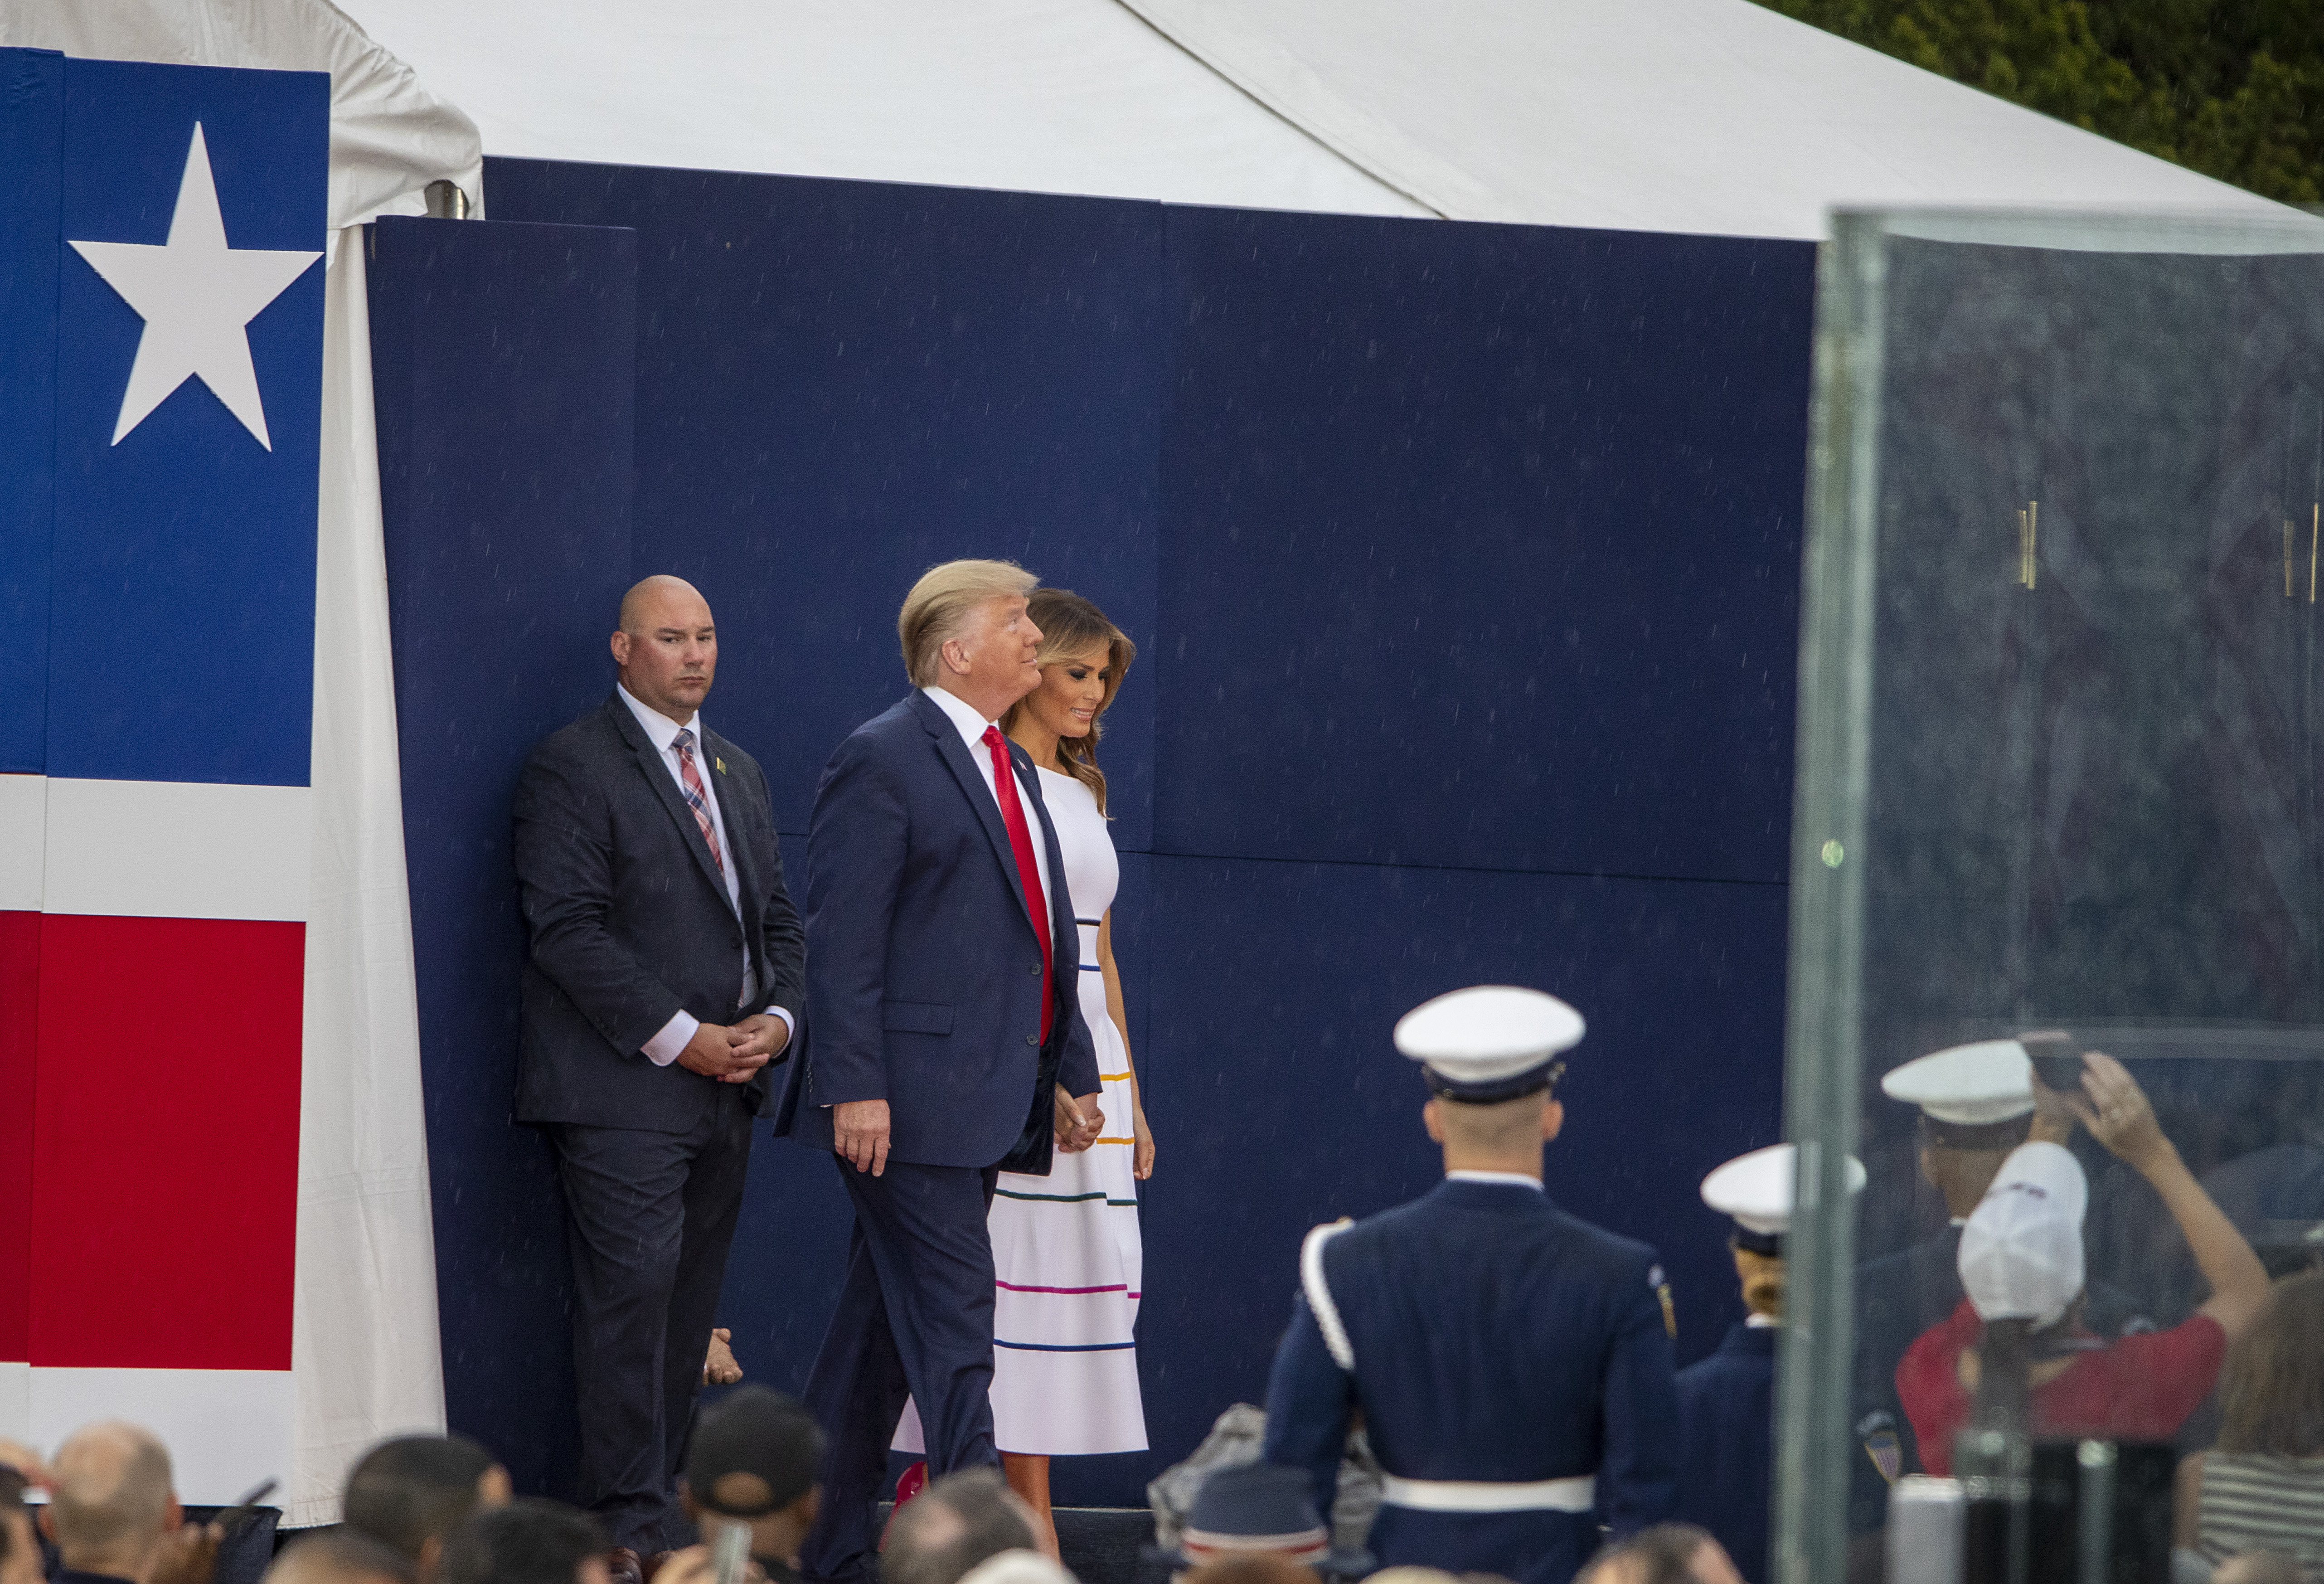 """WASHINGTON, DC - JULY 04: President Donald Trump and first lady Melania Trump take the stage on July 04, 2019 in Washington, DC. President Trump is holding a """"Salute to America"""" celebration on the National Mall on Independence Day this year with musical performances, a military flyover, and fireworks. (Photo by Tasos Katopodis/Getty Images)"""